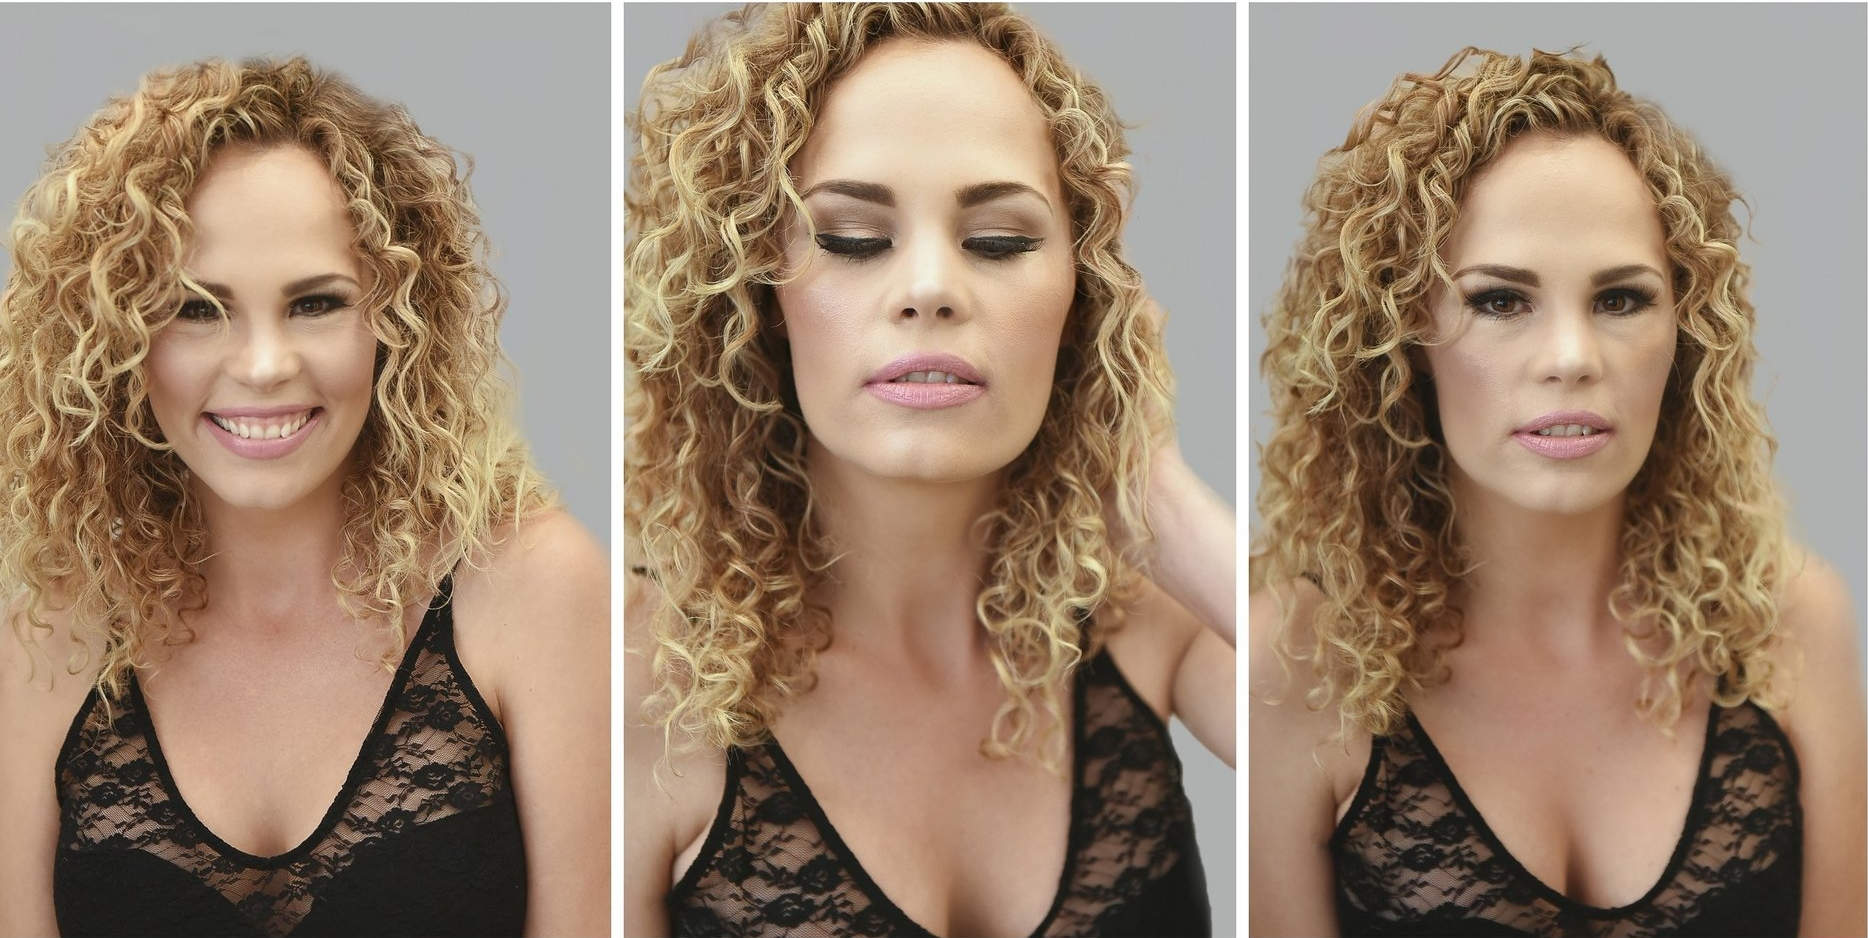 Flirty– - Turn heads in this modern take on a bombshell look